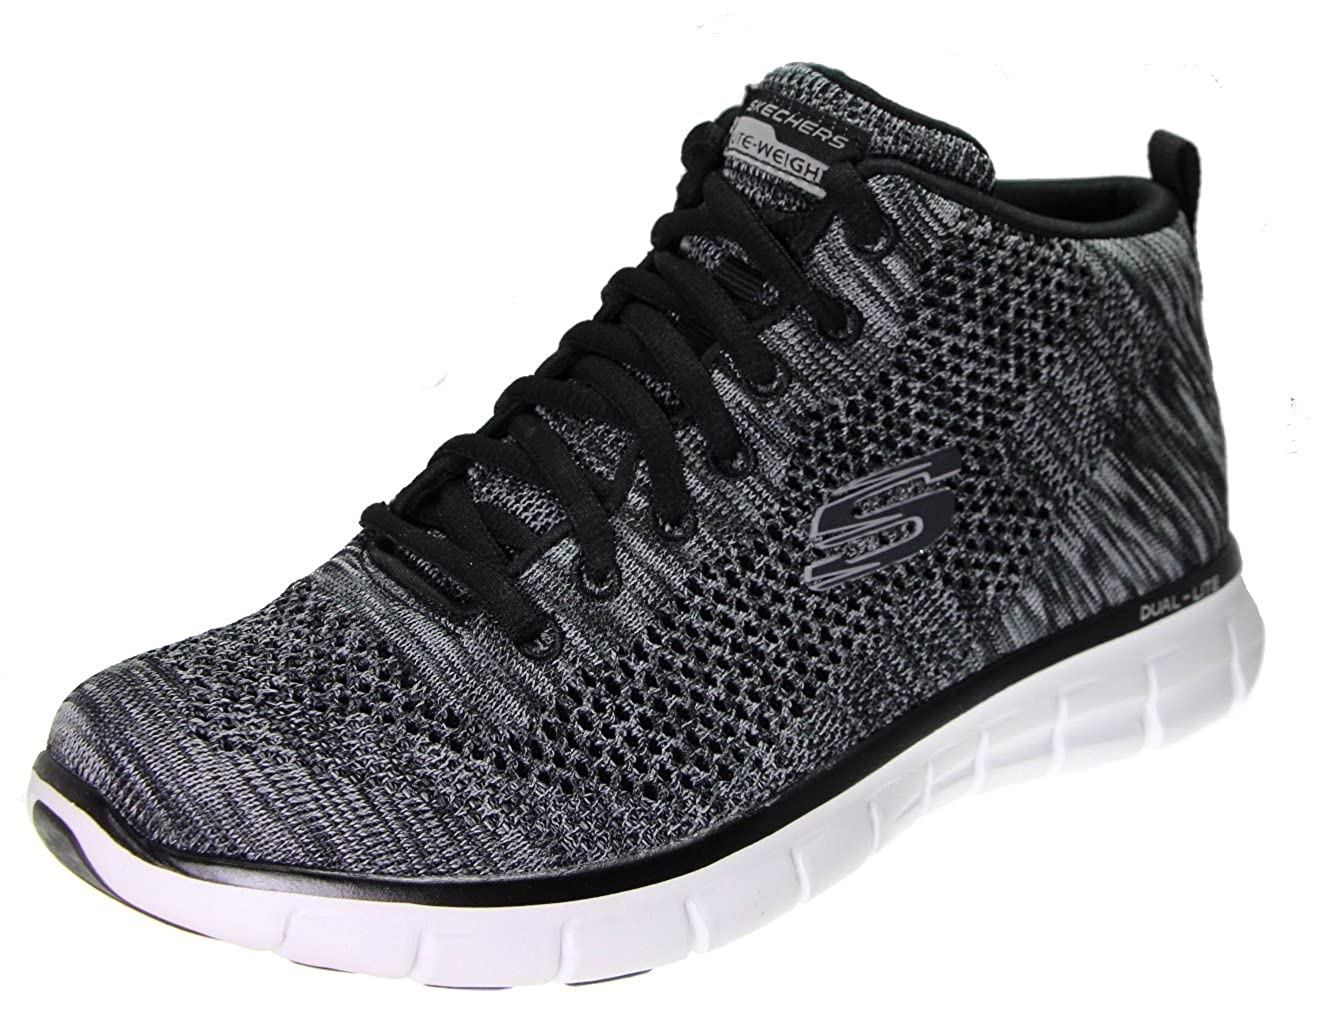 [スケッチャーズ] SKECHERS BURST- DIVERGENT B079W33PSP 7 B(M) US|Black Knit/White Black Knit/White 7 B(M) US